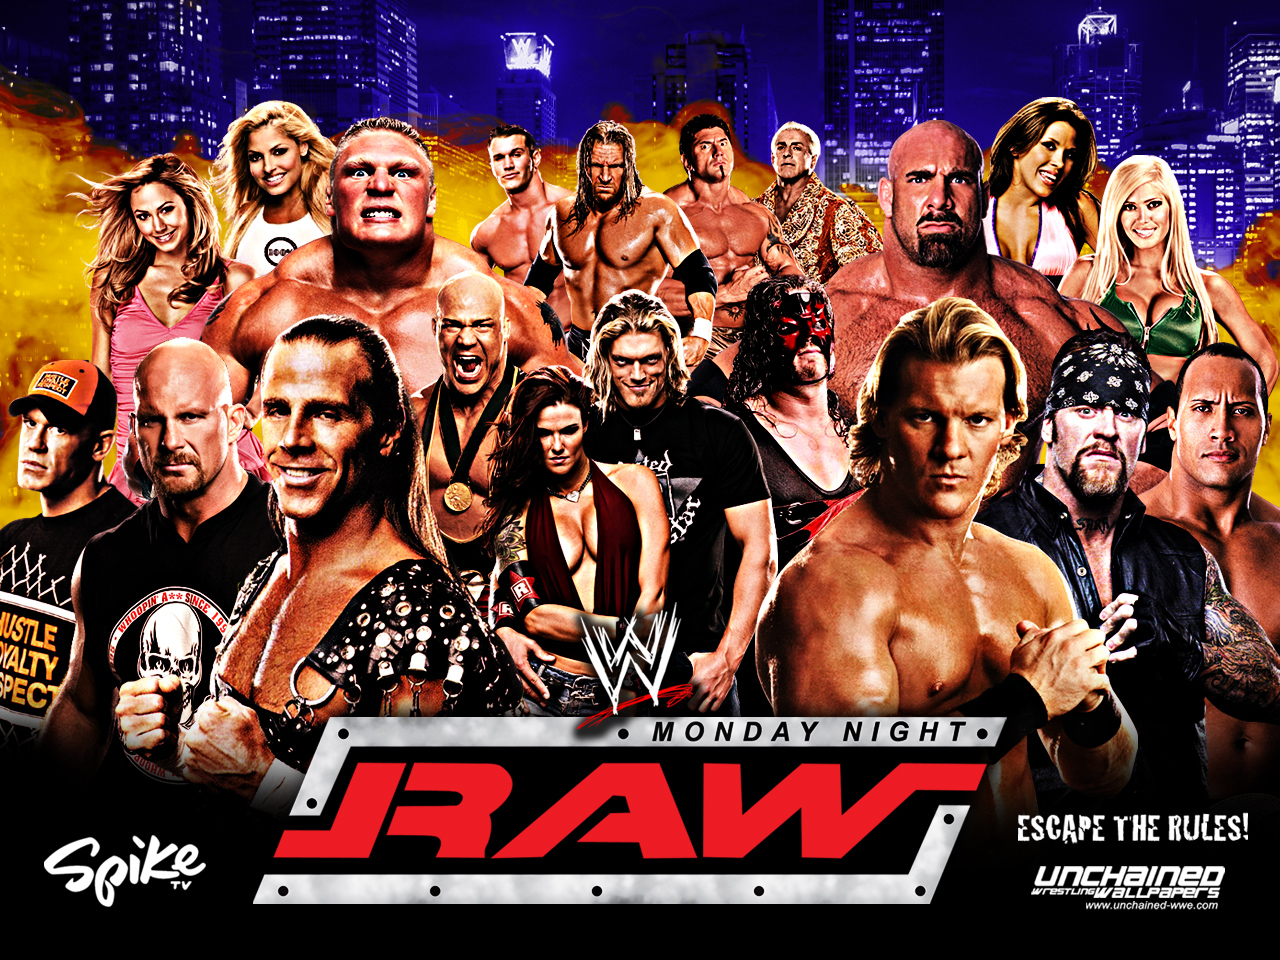 Wwe monday night raw wwe wallpaper 31544327 fanpop - Monday night raw images ...